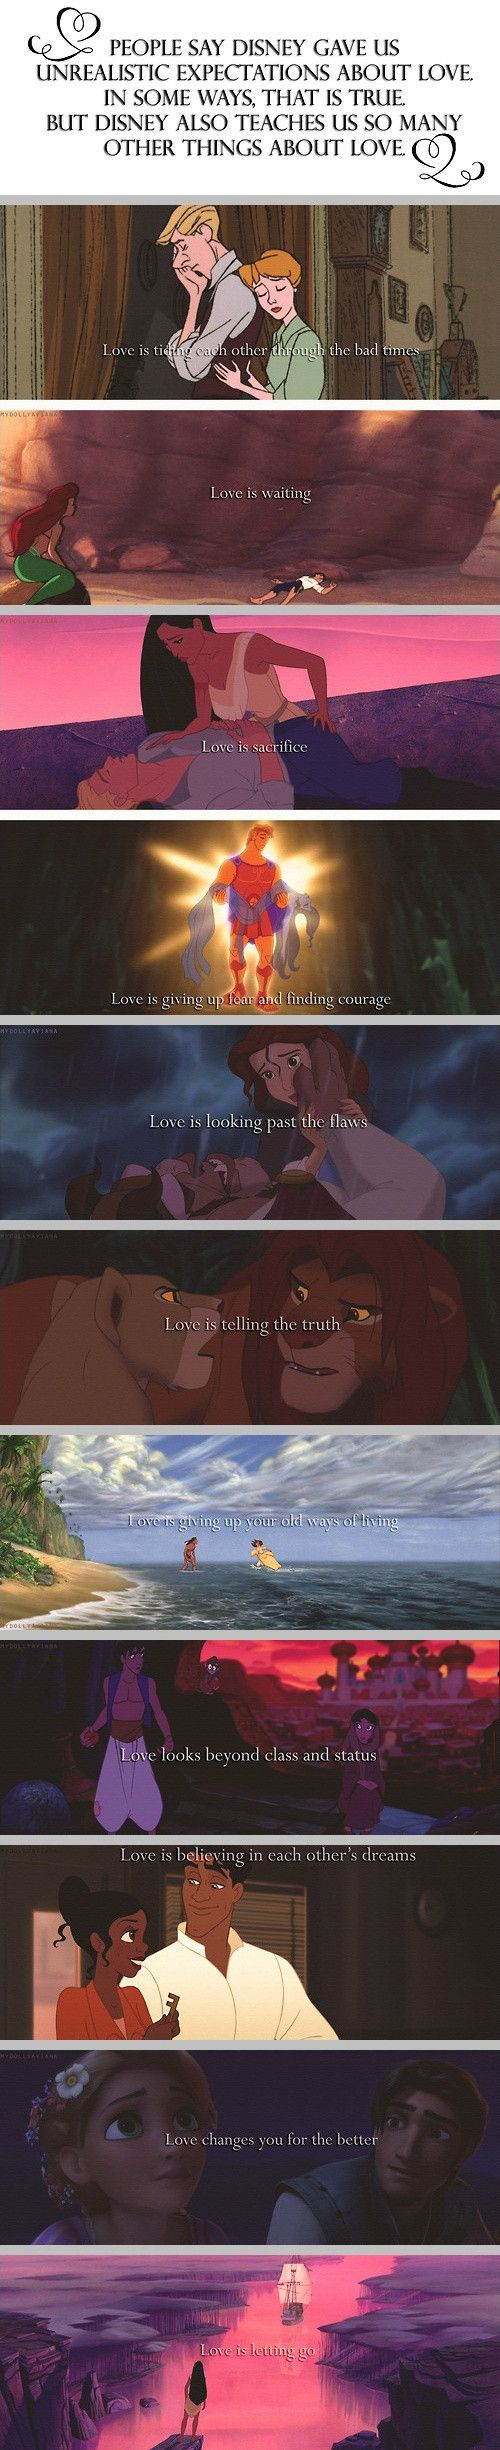 Love in Disney movies :)